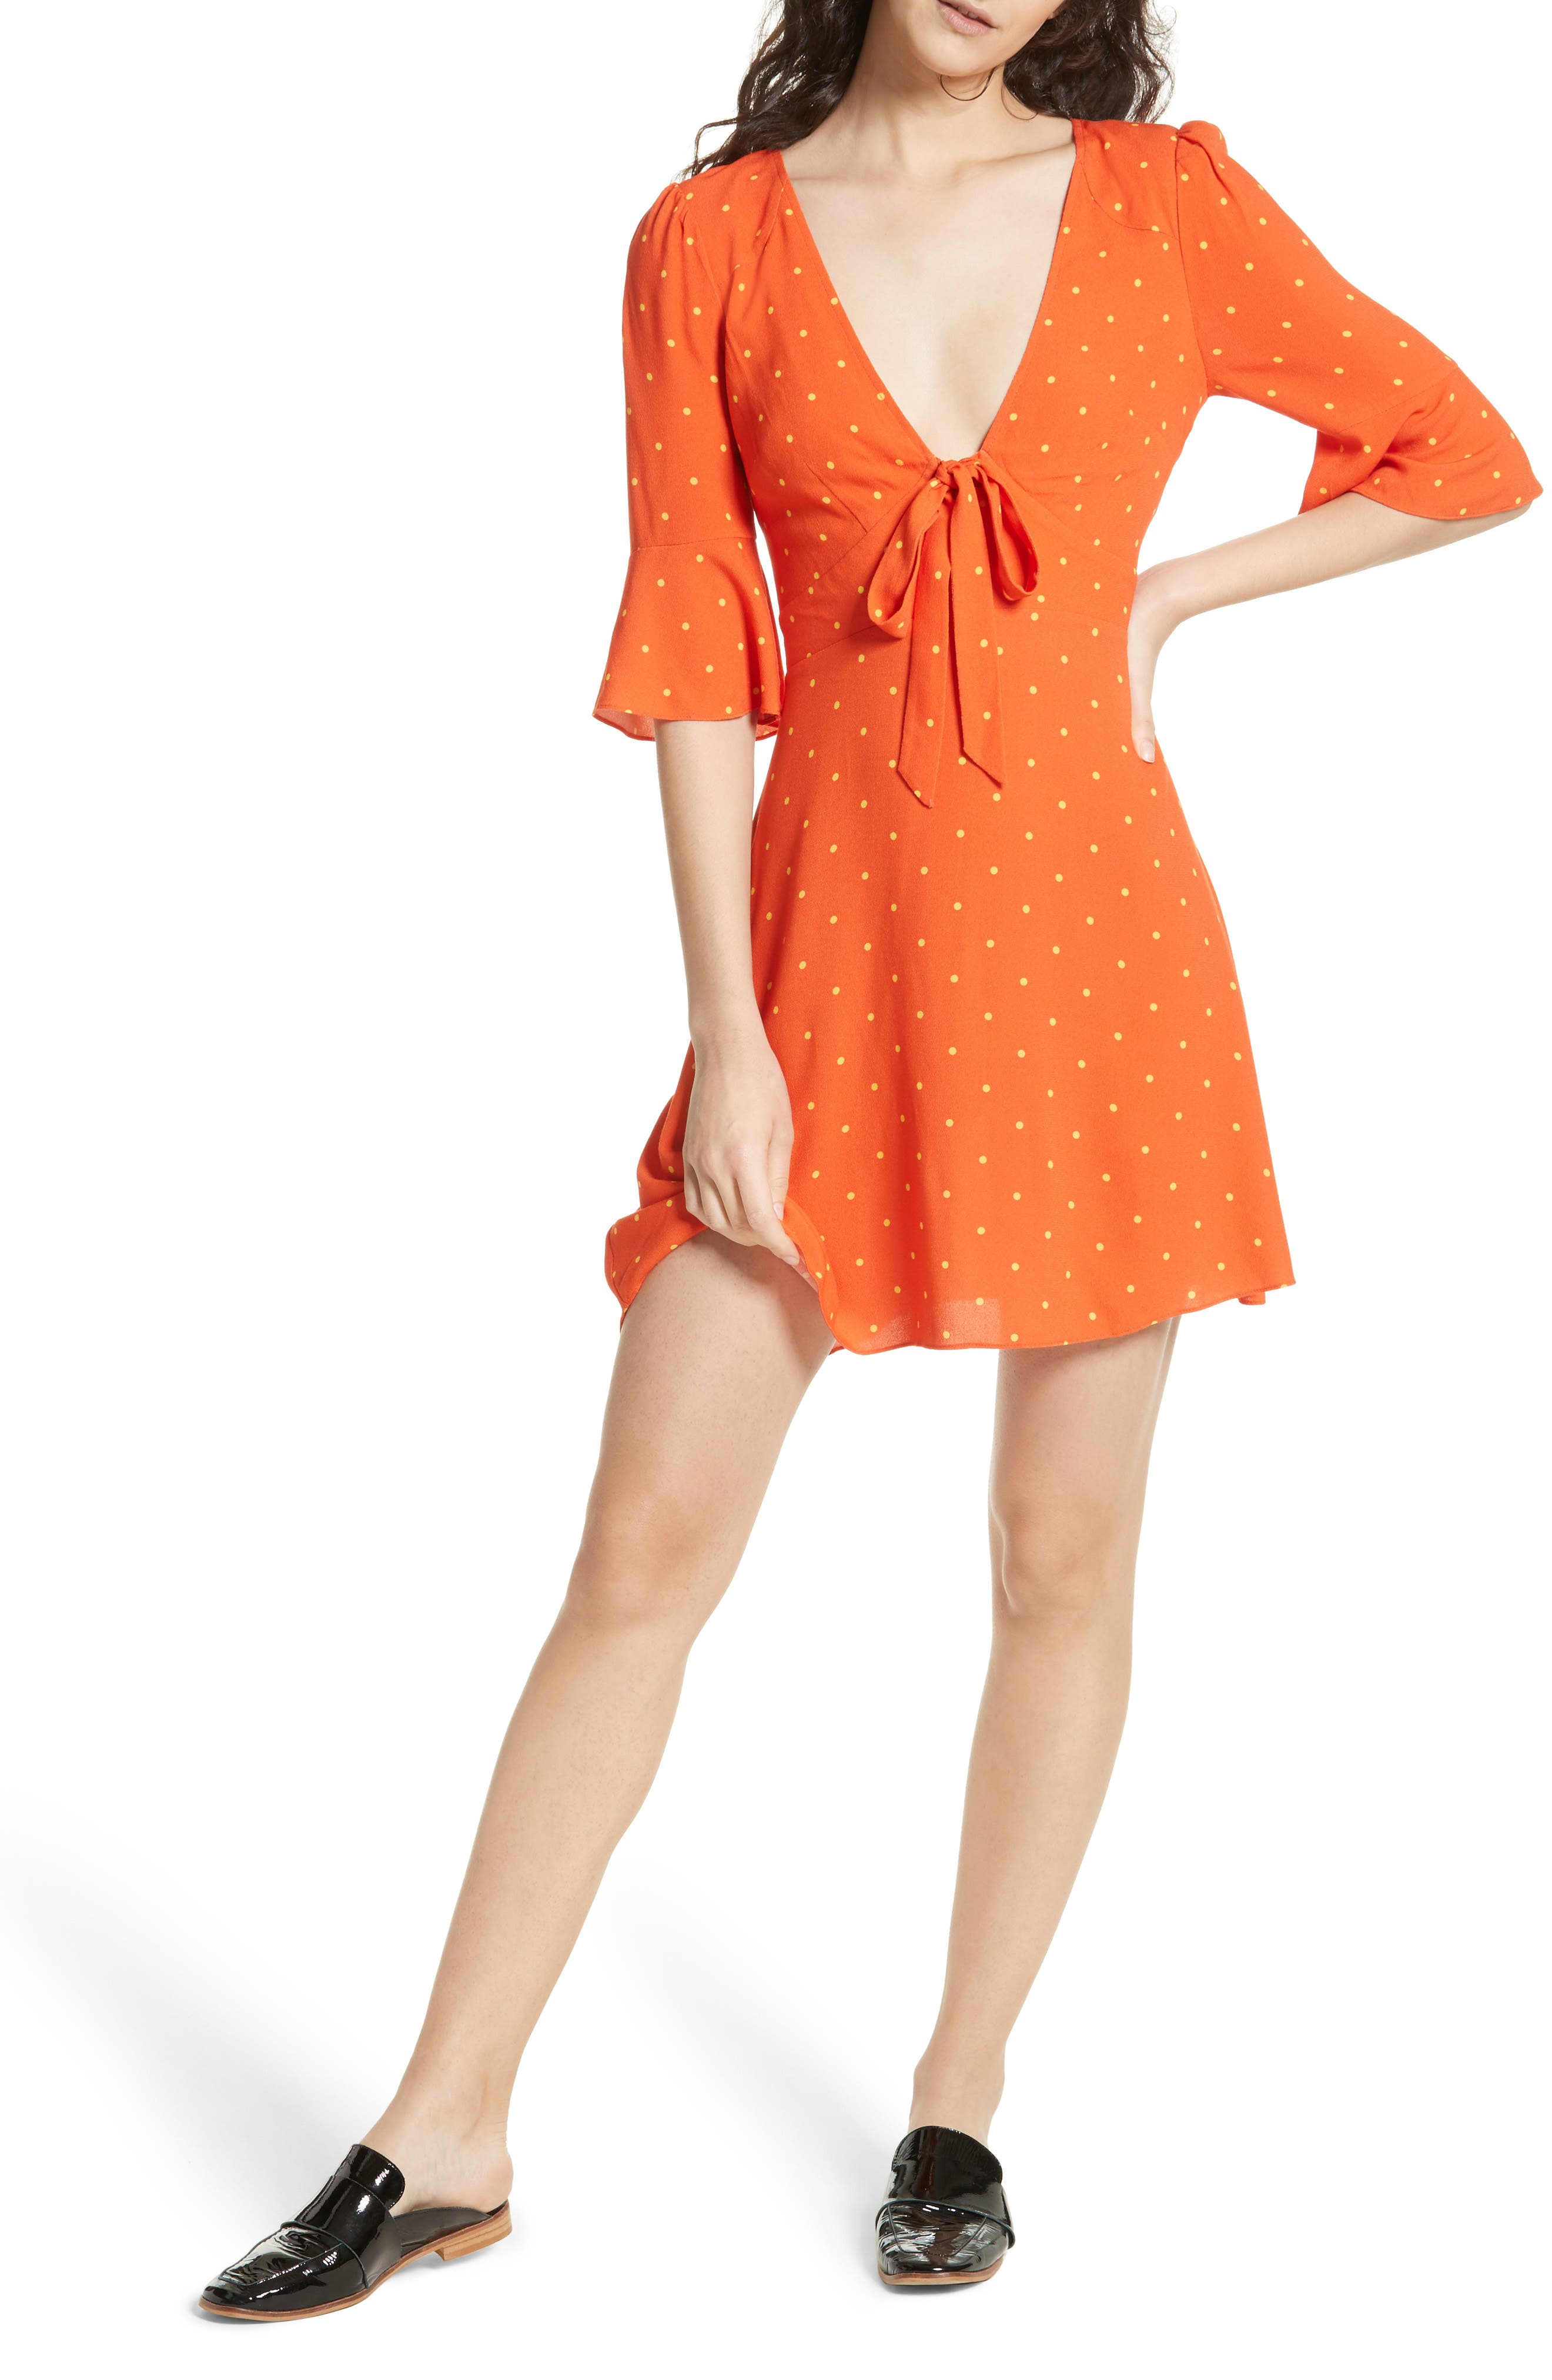 All Yours Minidress,                             Main thumbnail 2, color,